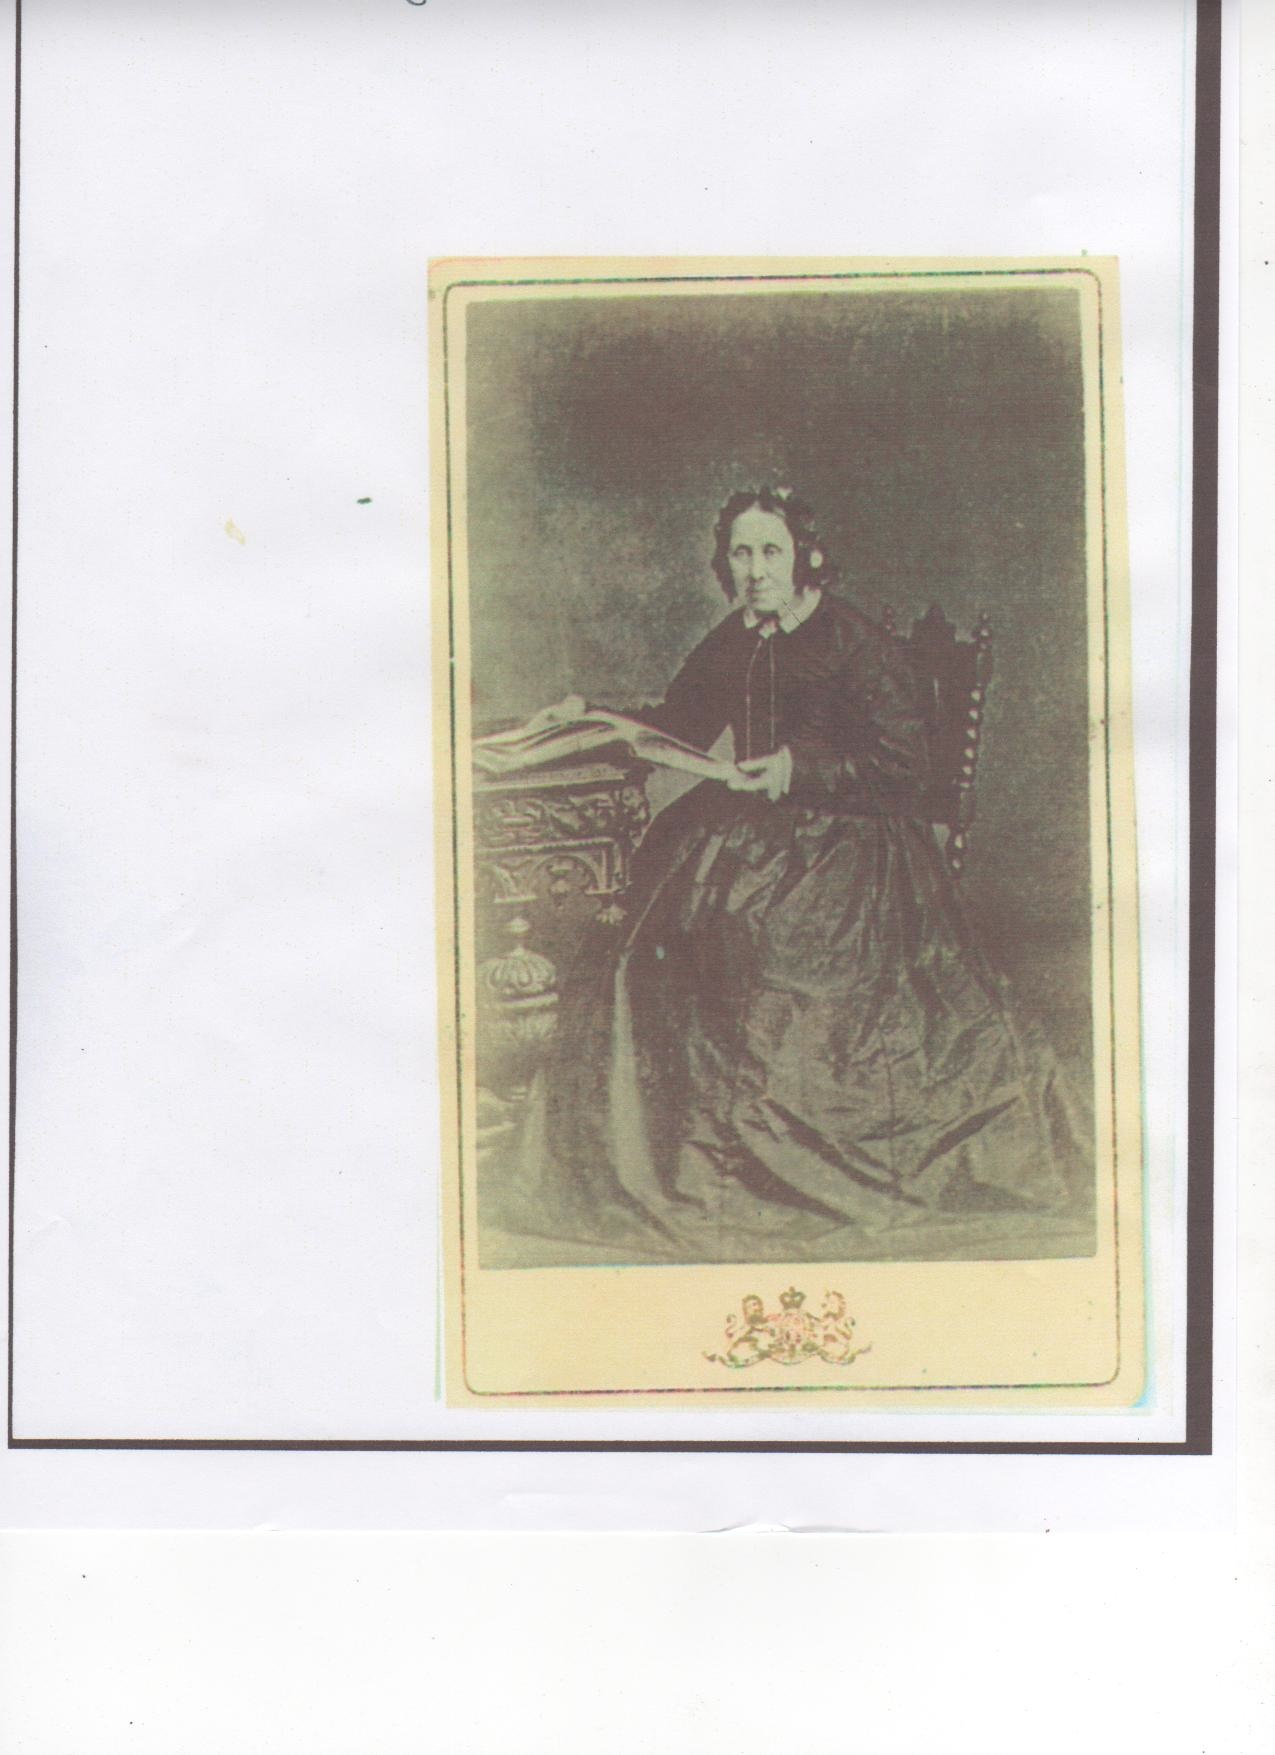 A photograph believed to be of Eliza Roe in old age